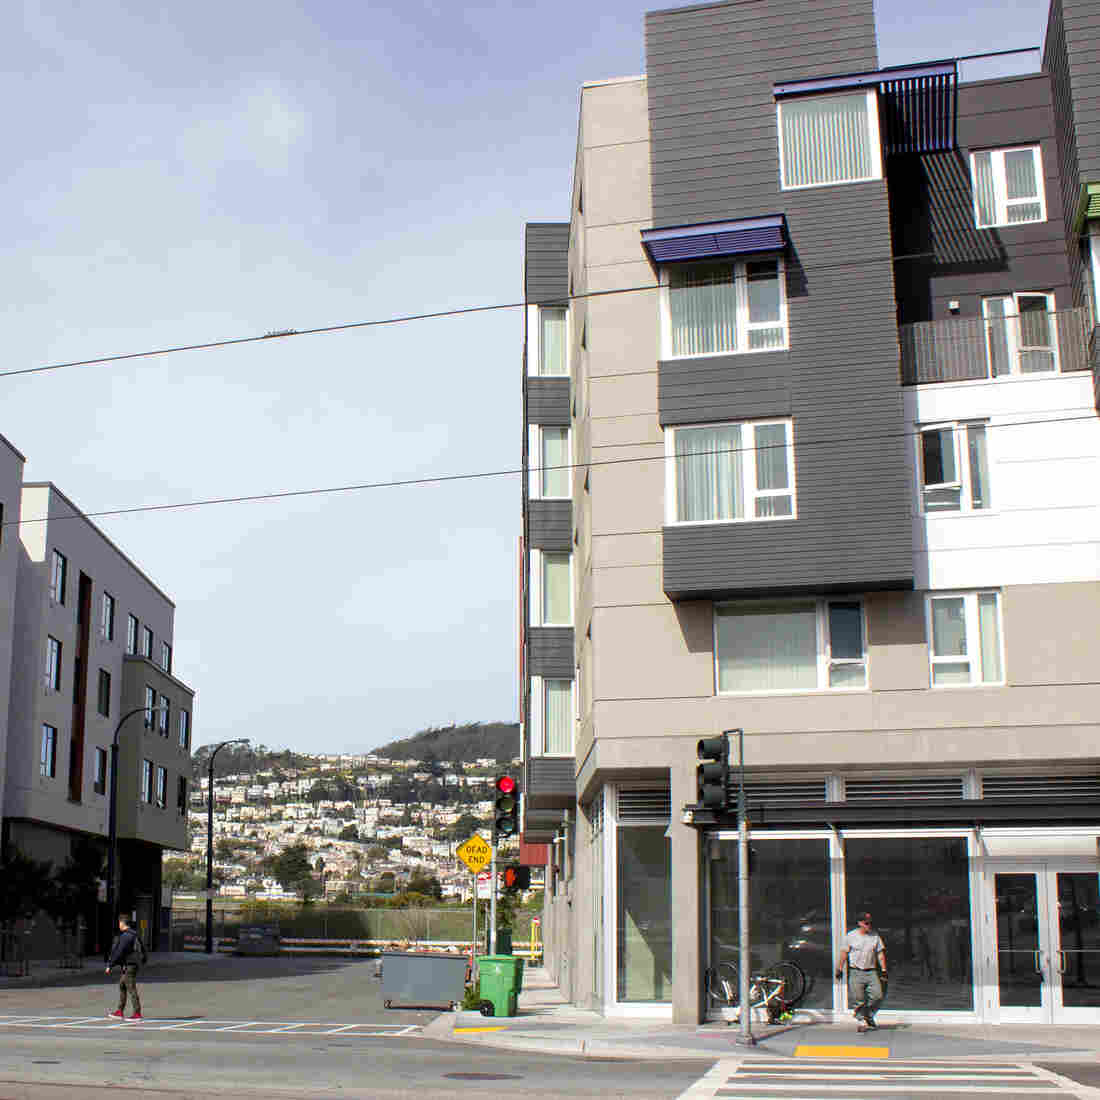 Mercy, a San Francisco-based nonprofit, provides subsidized affordable housing for low-income residents, including 25 apartments reserved for 18- to 24-year-olds.